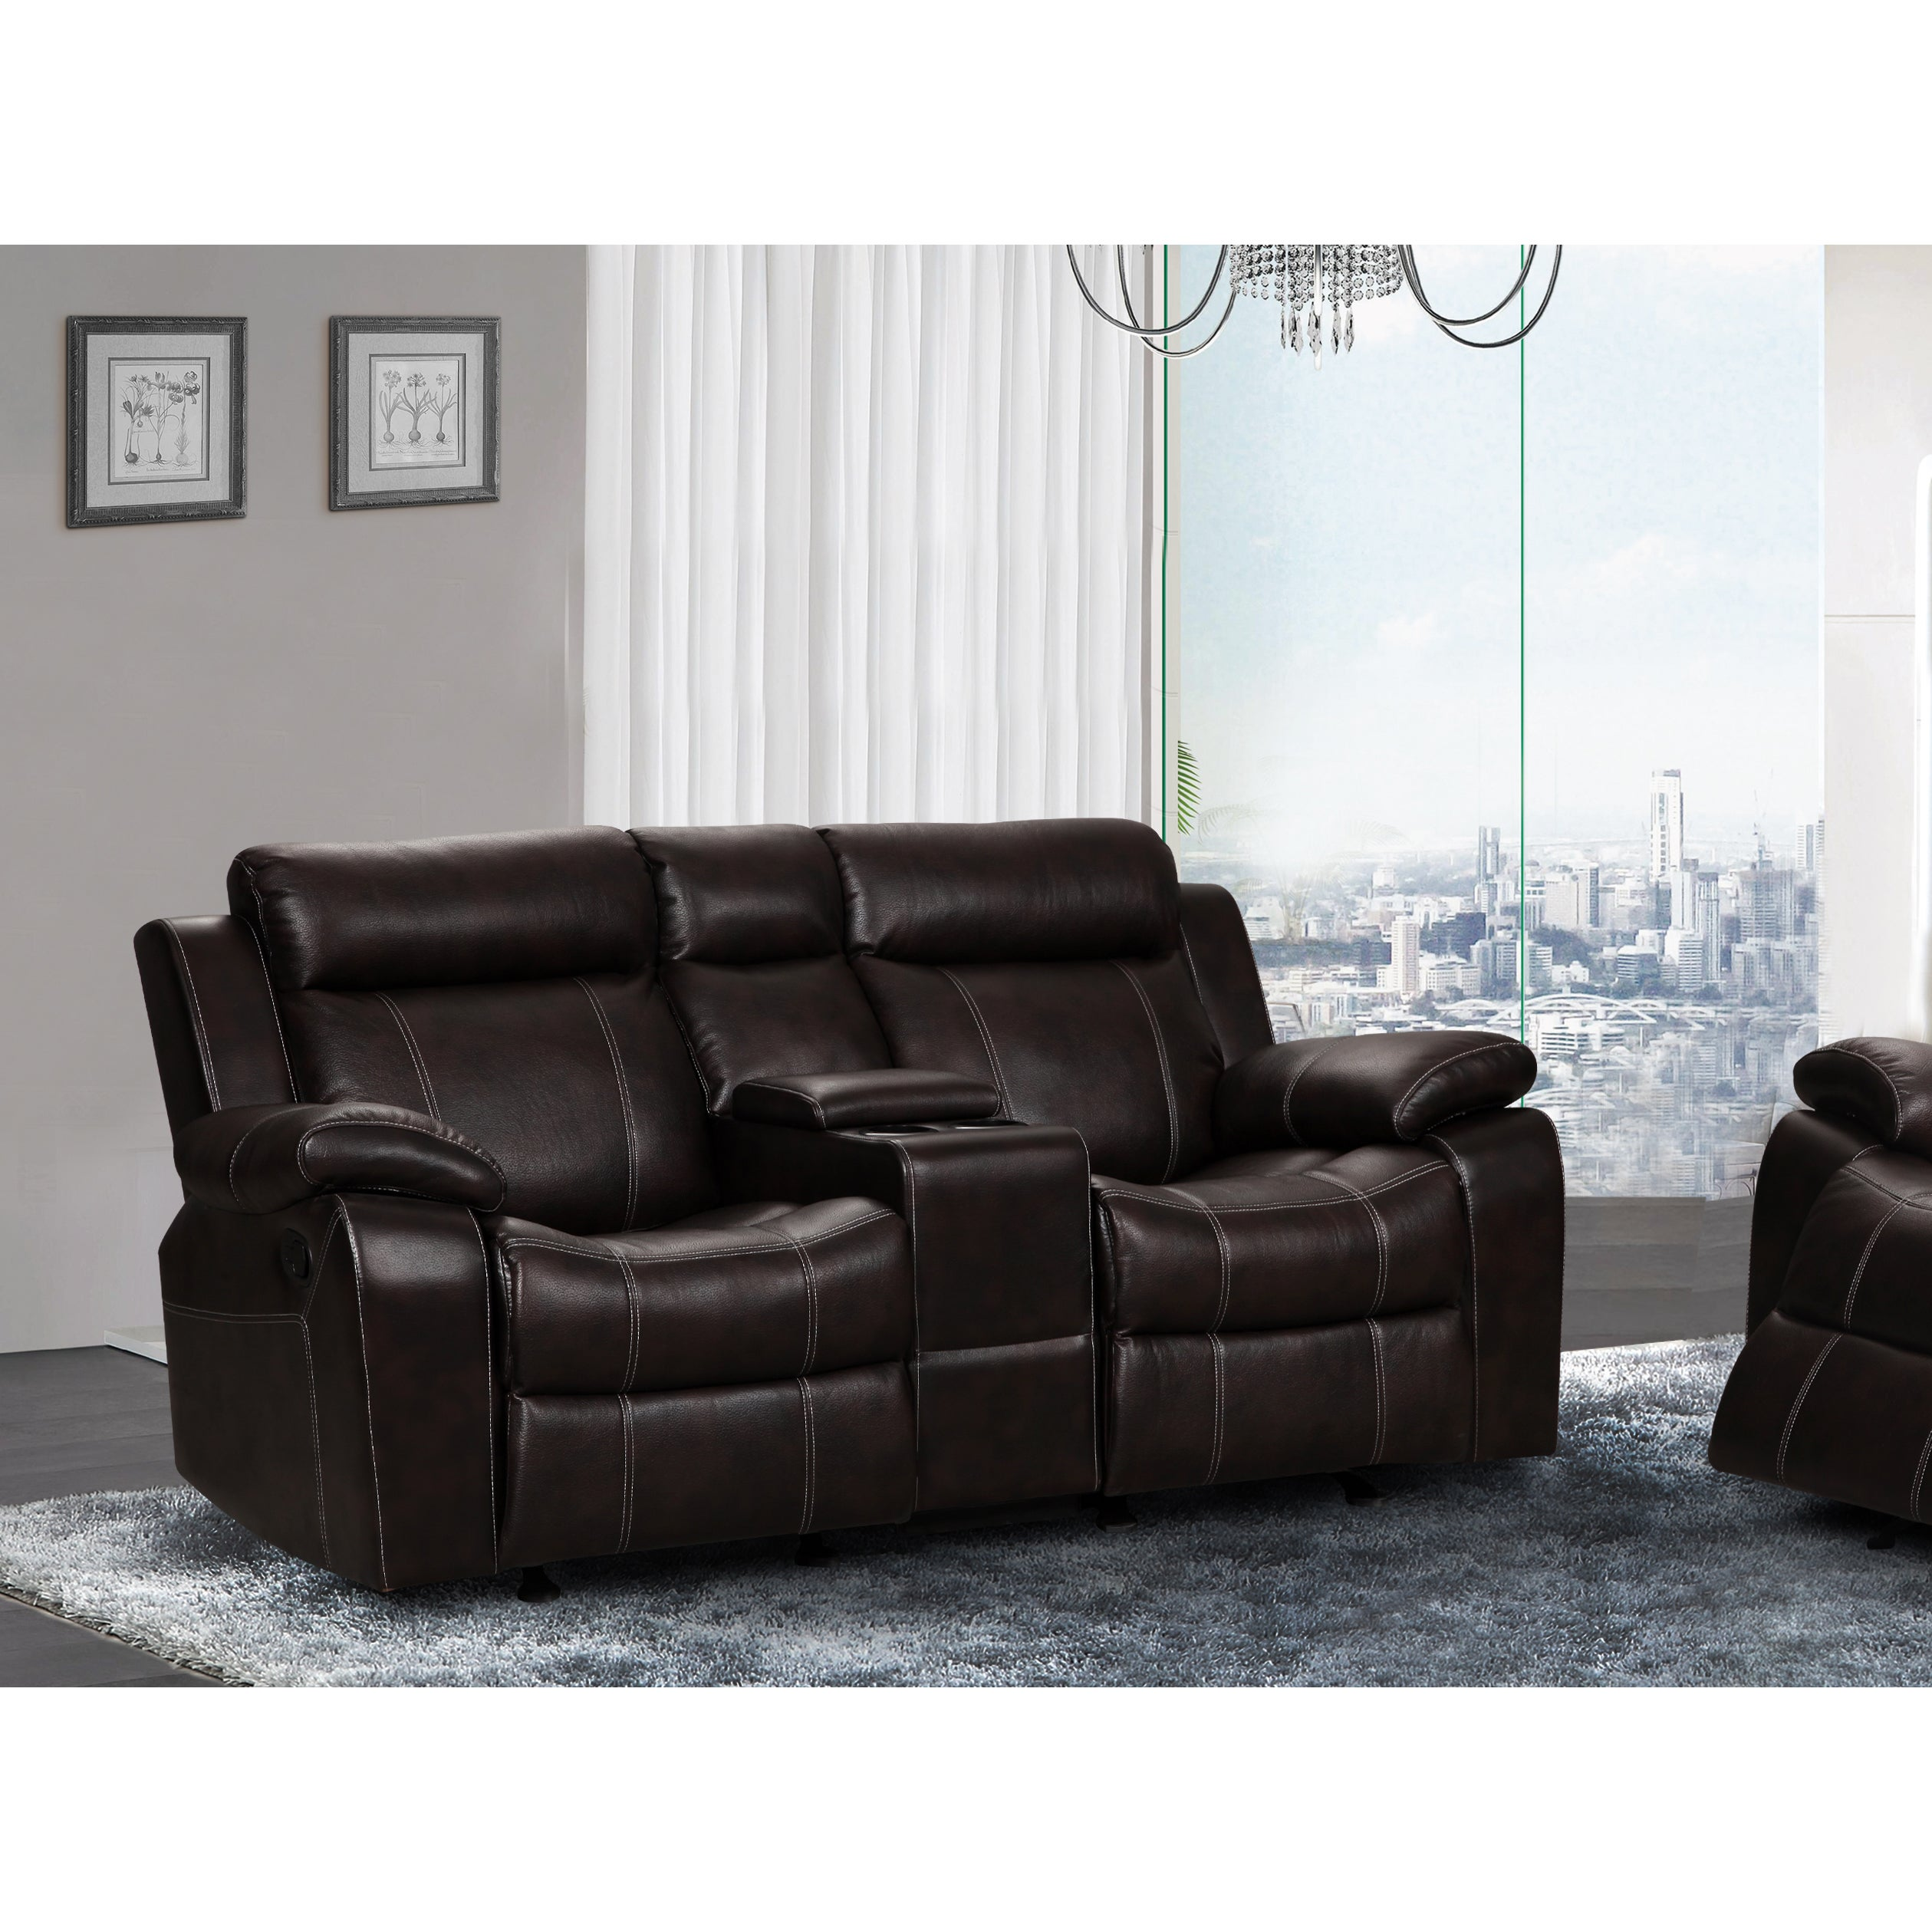 doble in microfiber laurelton console center loveseat homelegance com charcoal ip walmart glider with reclining w